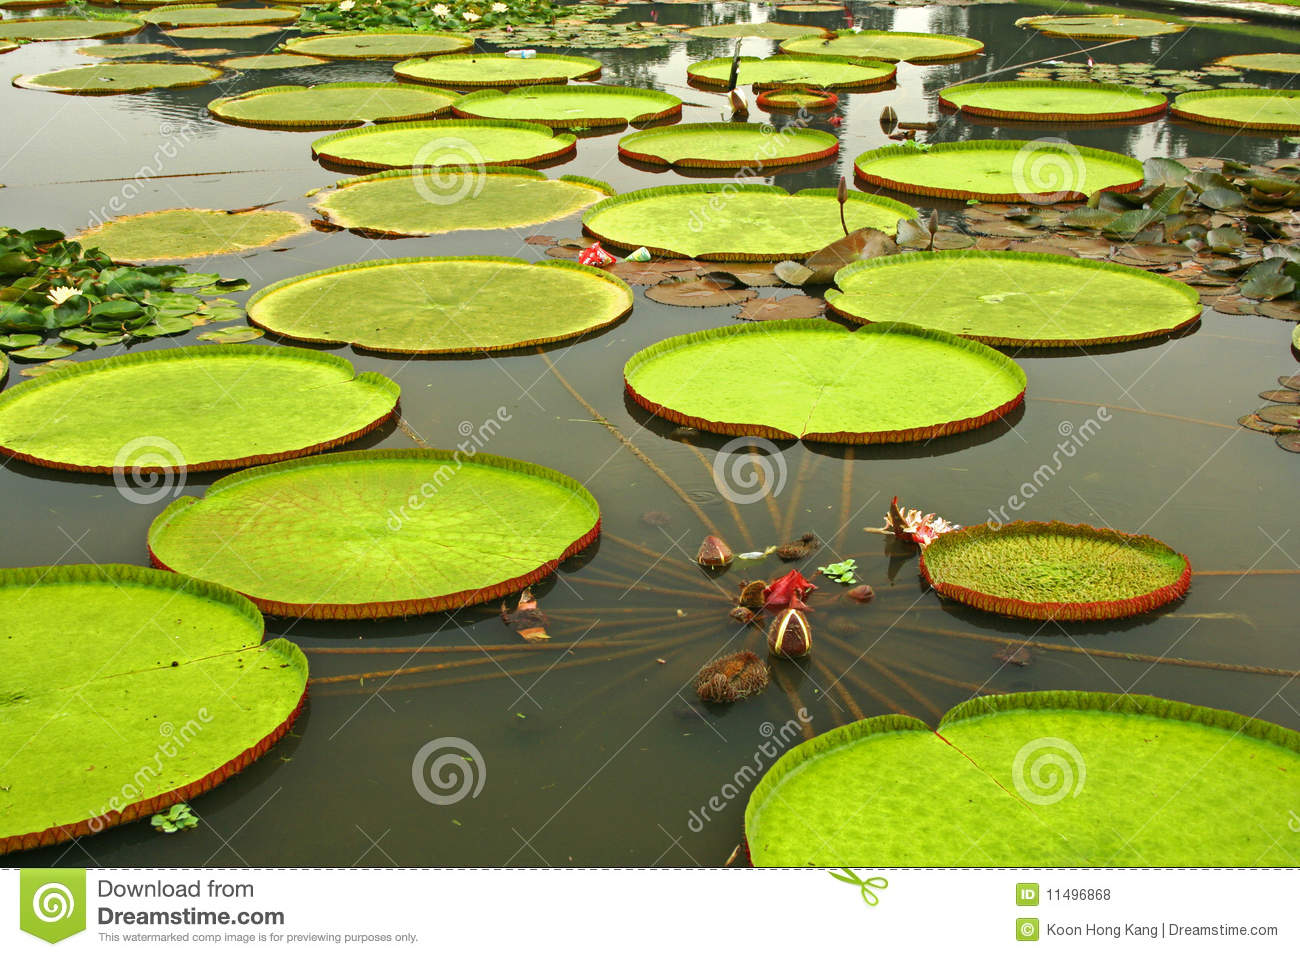 Giant Leaves Of Amazonian Water Lilies Royalty Free Stock Photos.